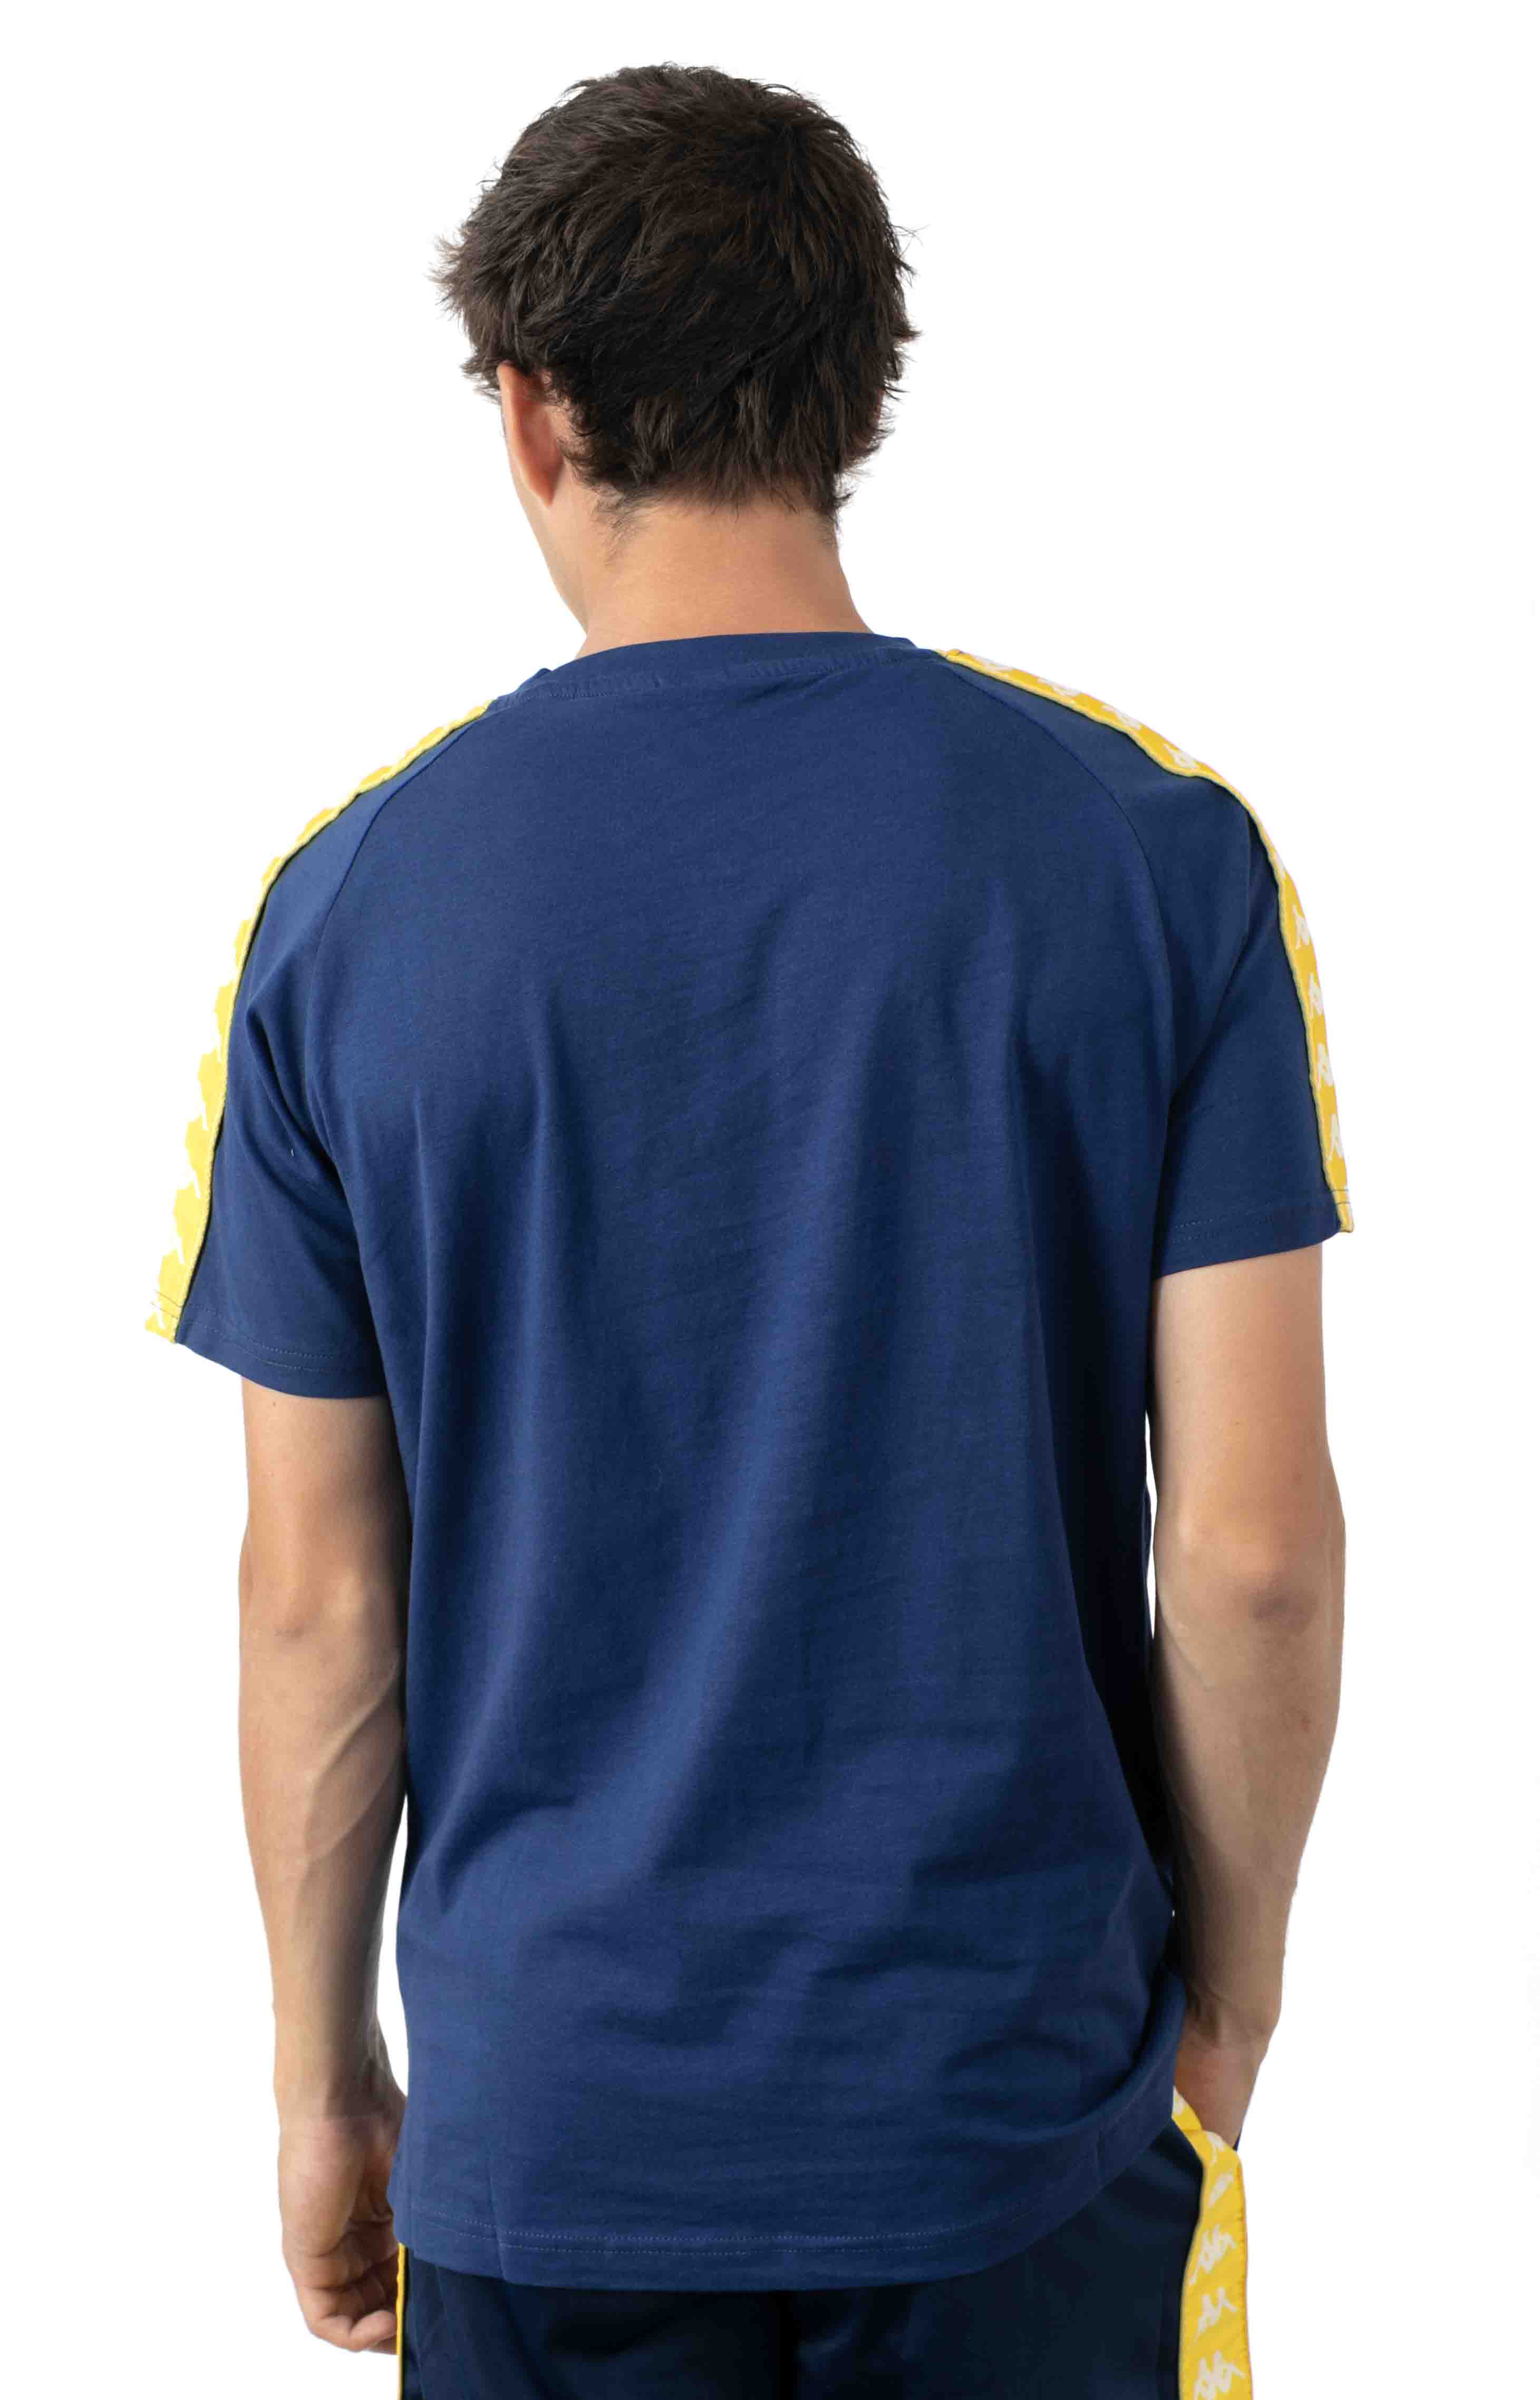 222 Banda Balima T-Shirt - Blue Mid/Yellow 3